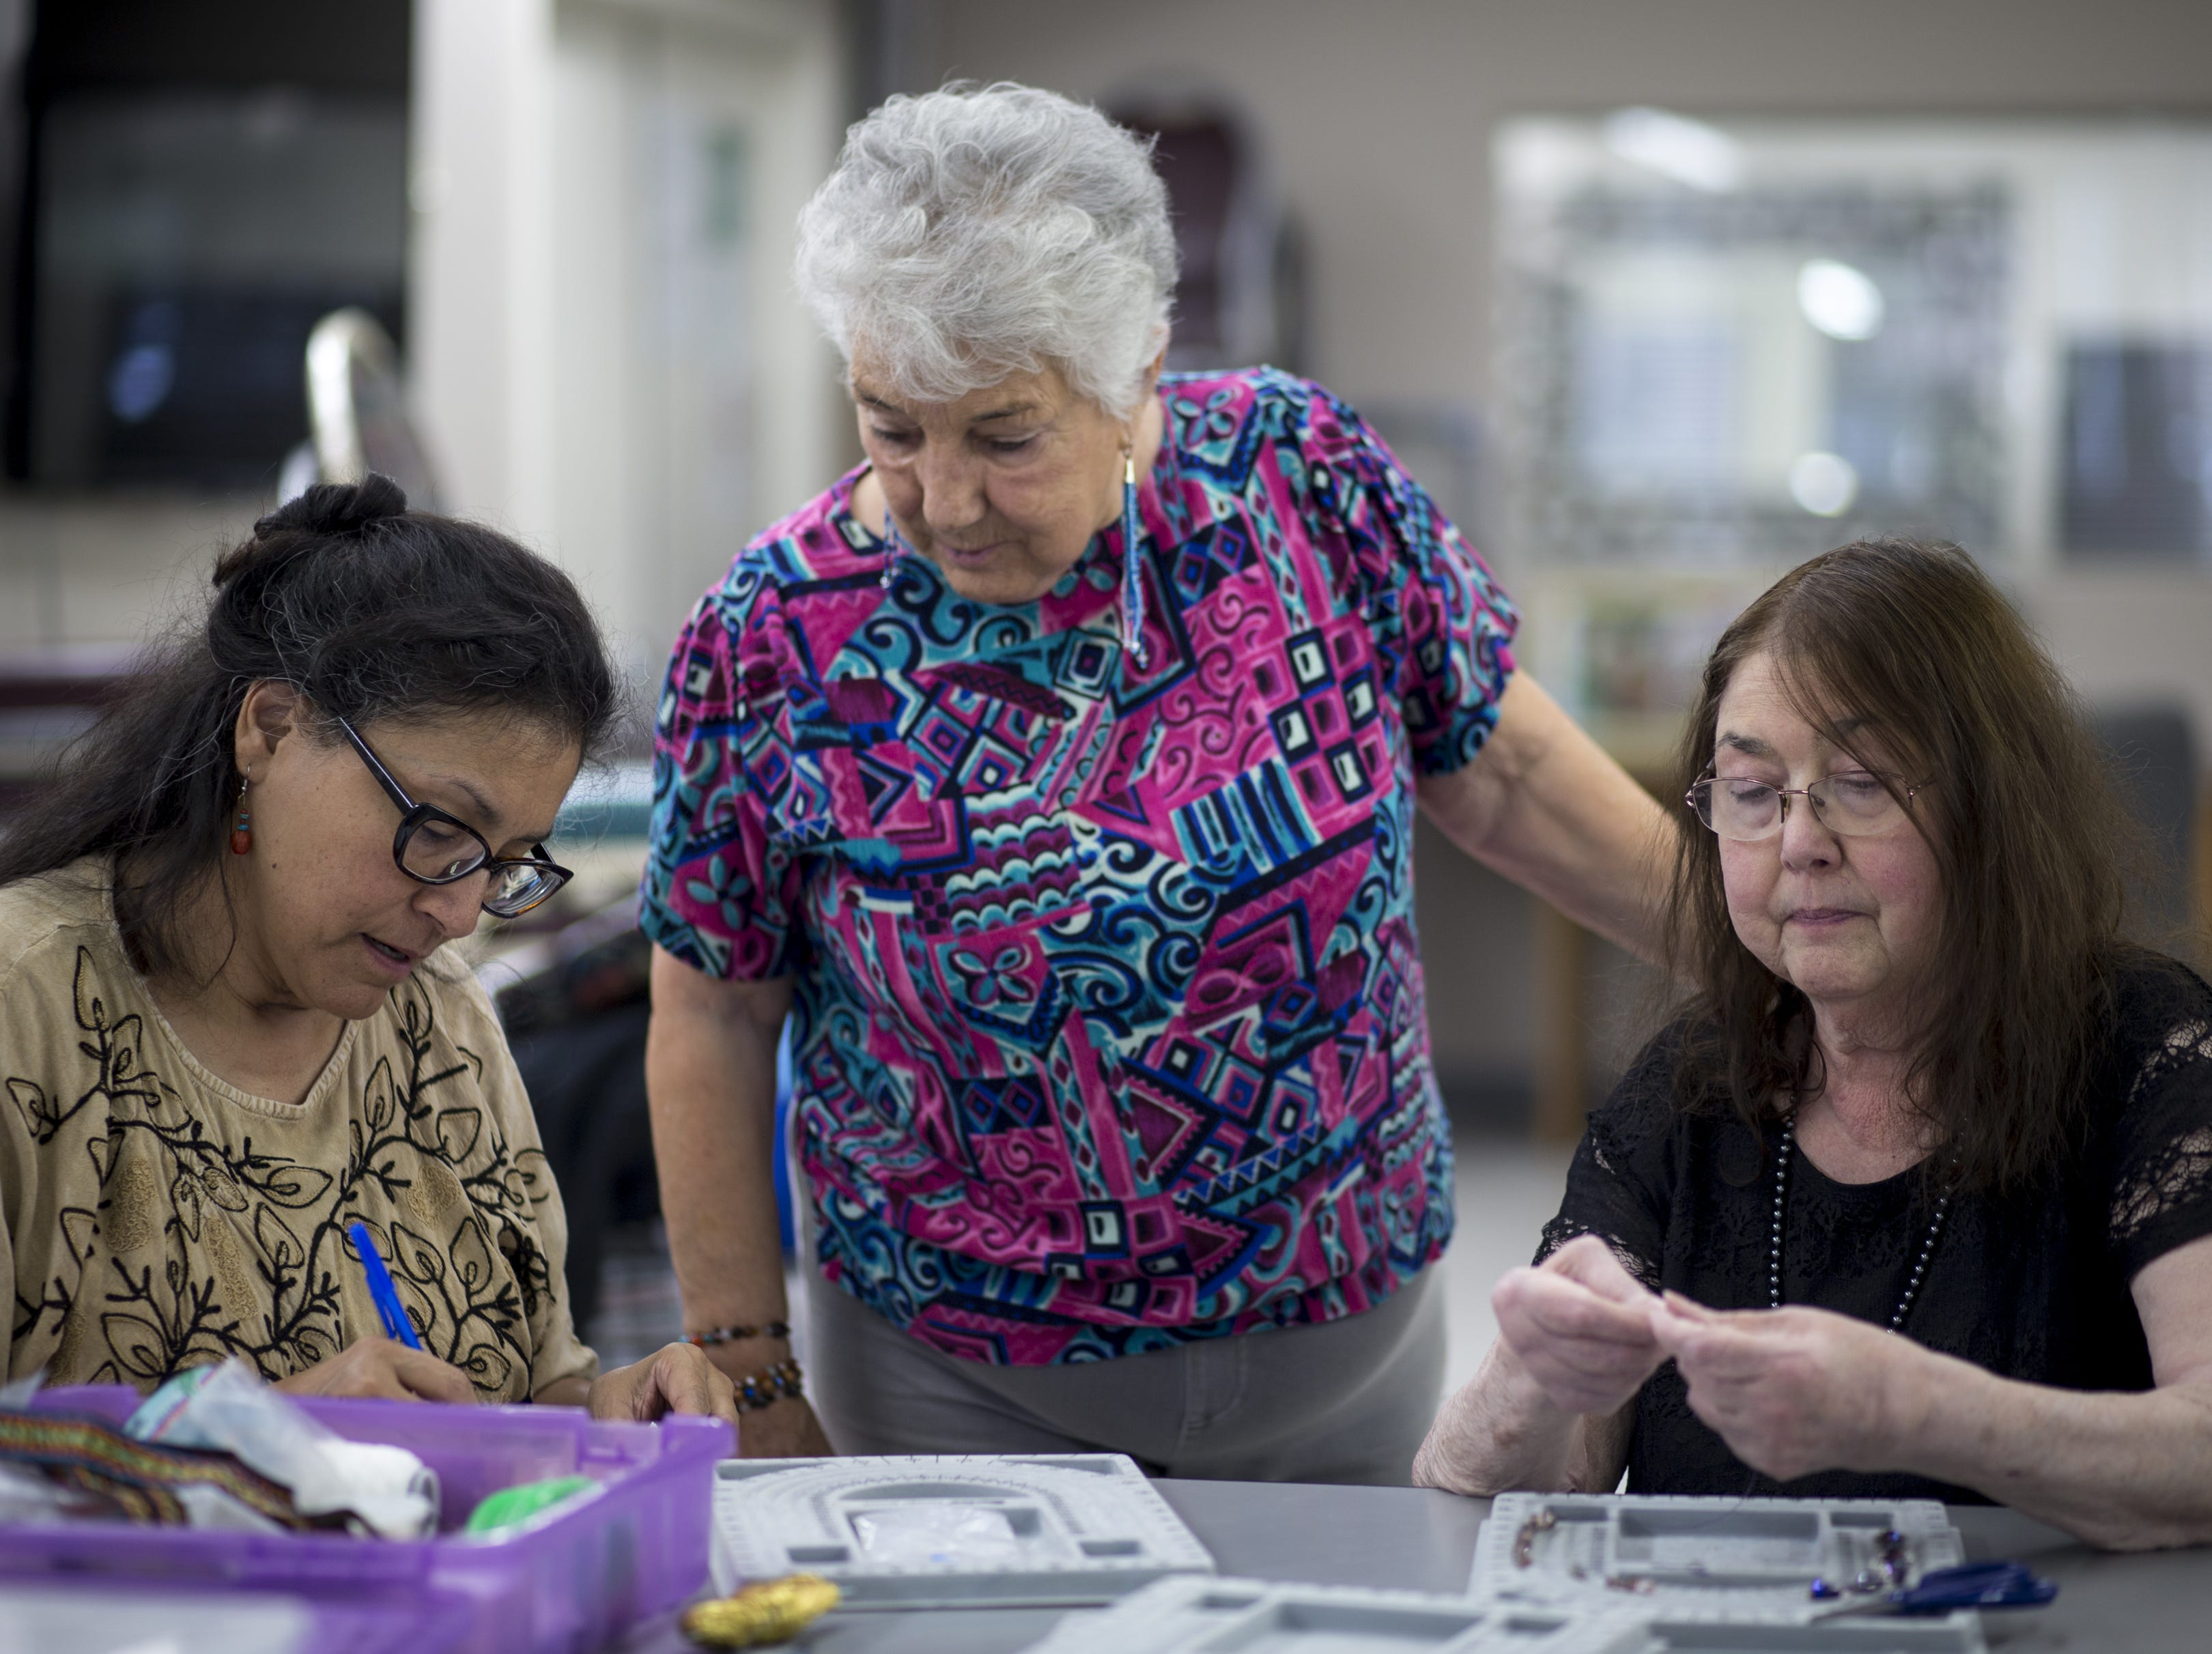 Barbara Cory (right) and Cynthia Fodness make jewelry, Dec. 12, 2018 at Phoenix Senior Opportunities, 1220 S. Seventh Ave. in Phoenix. Looking on is their instructor, Fina Gaffney (center). Cory copes with asthma that can flare up when smog worsens in Phoenix's winter months.